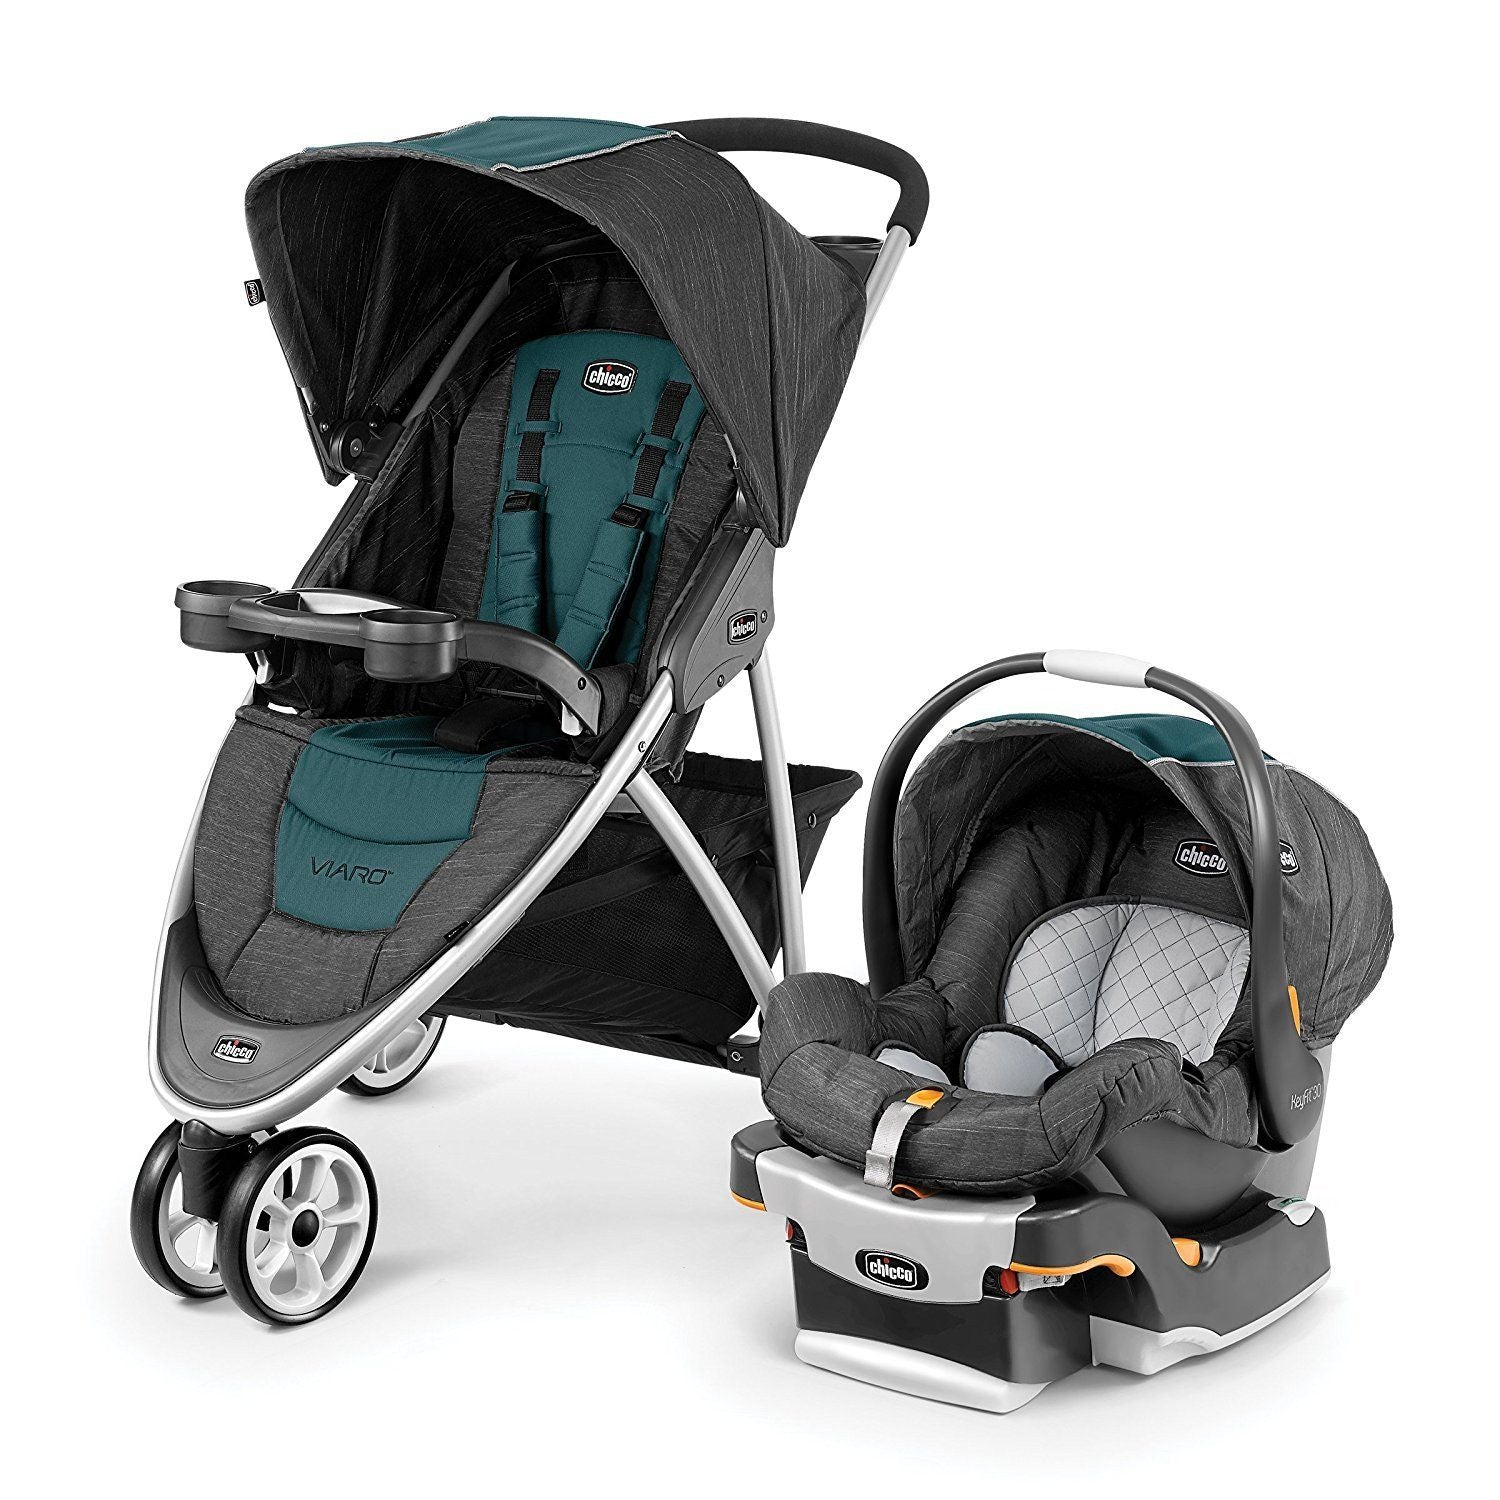 hicco Viaro Travel System in Verdant